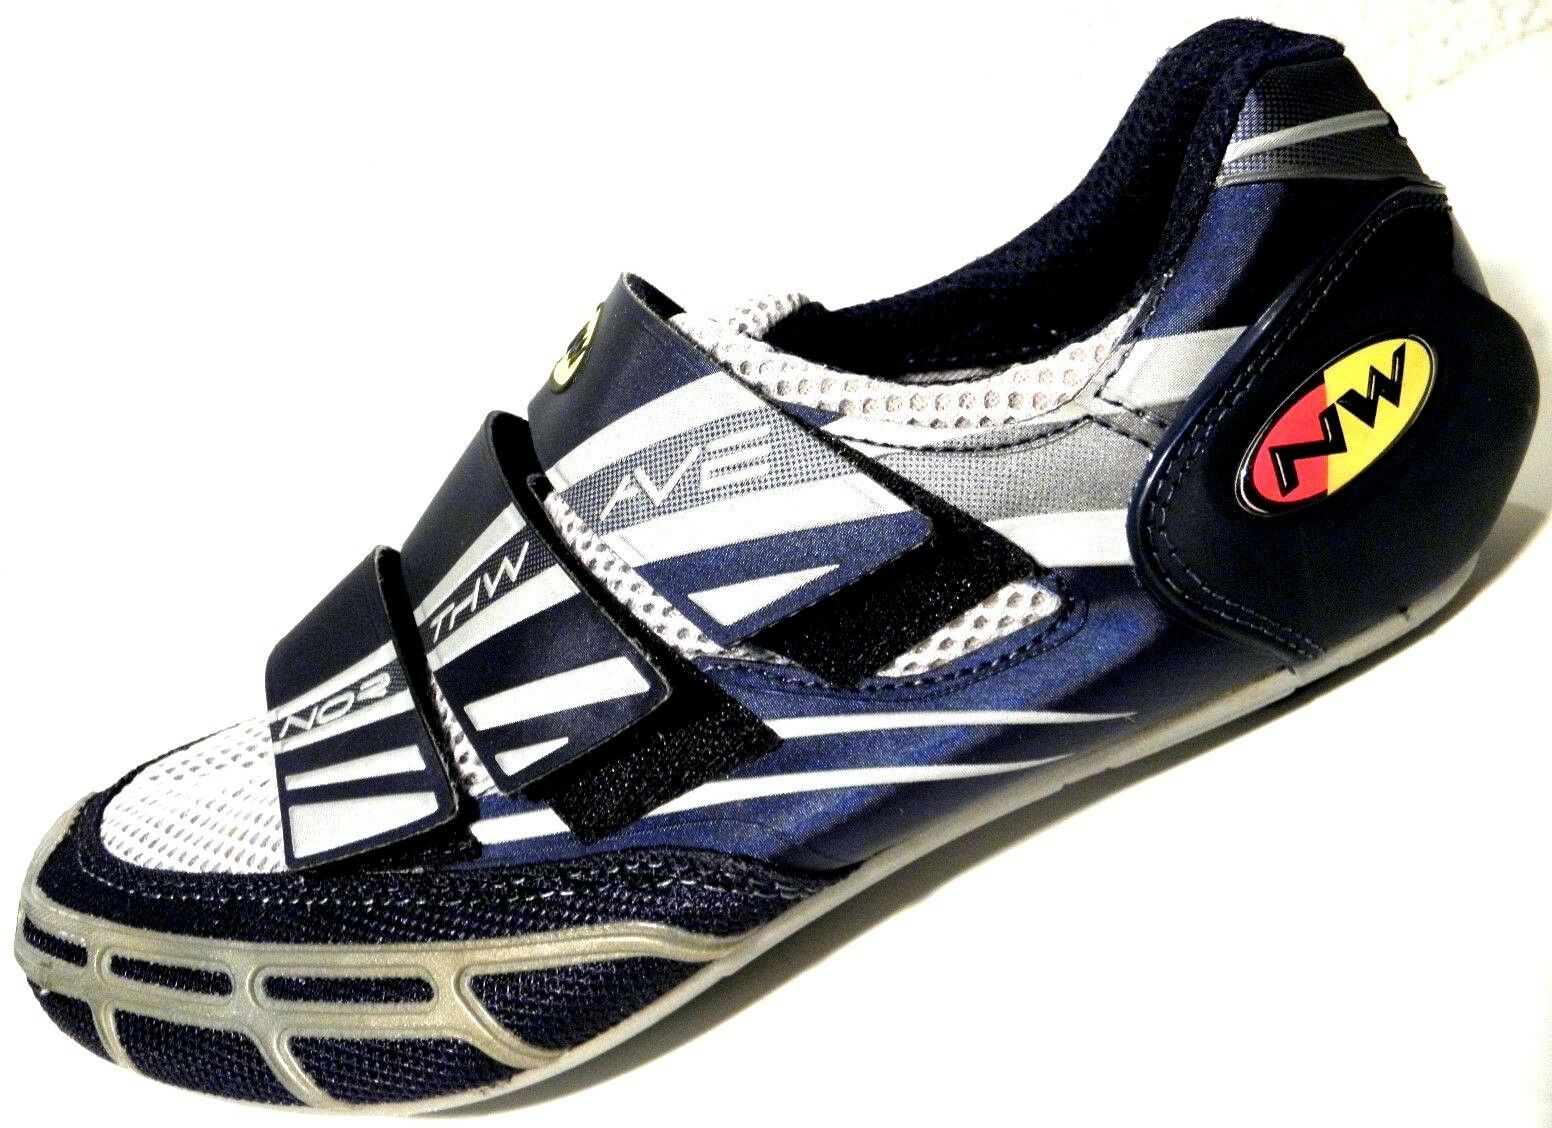 NorthWave Cycling shoes Revolution Italian Made Eur 42   US Men 9.5   US Wm 10.5